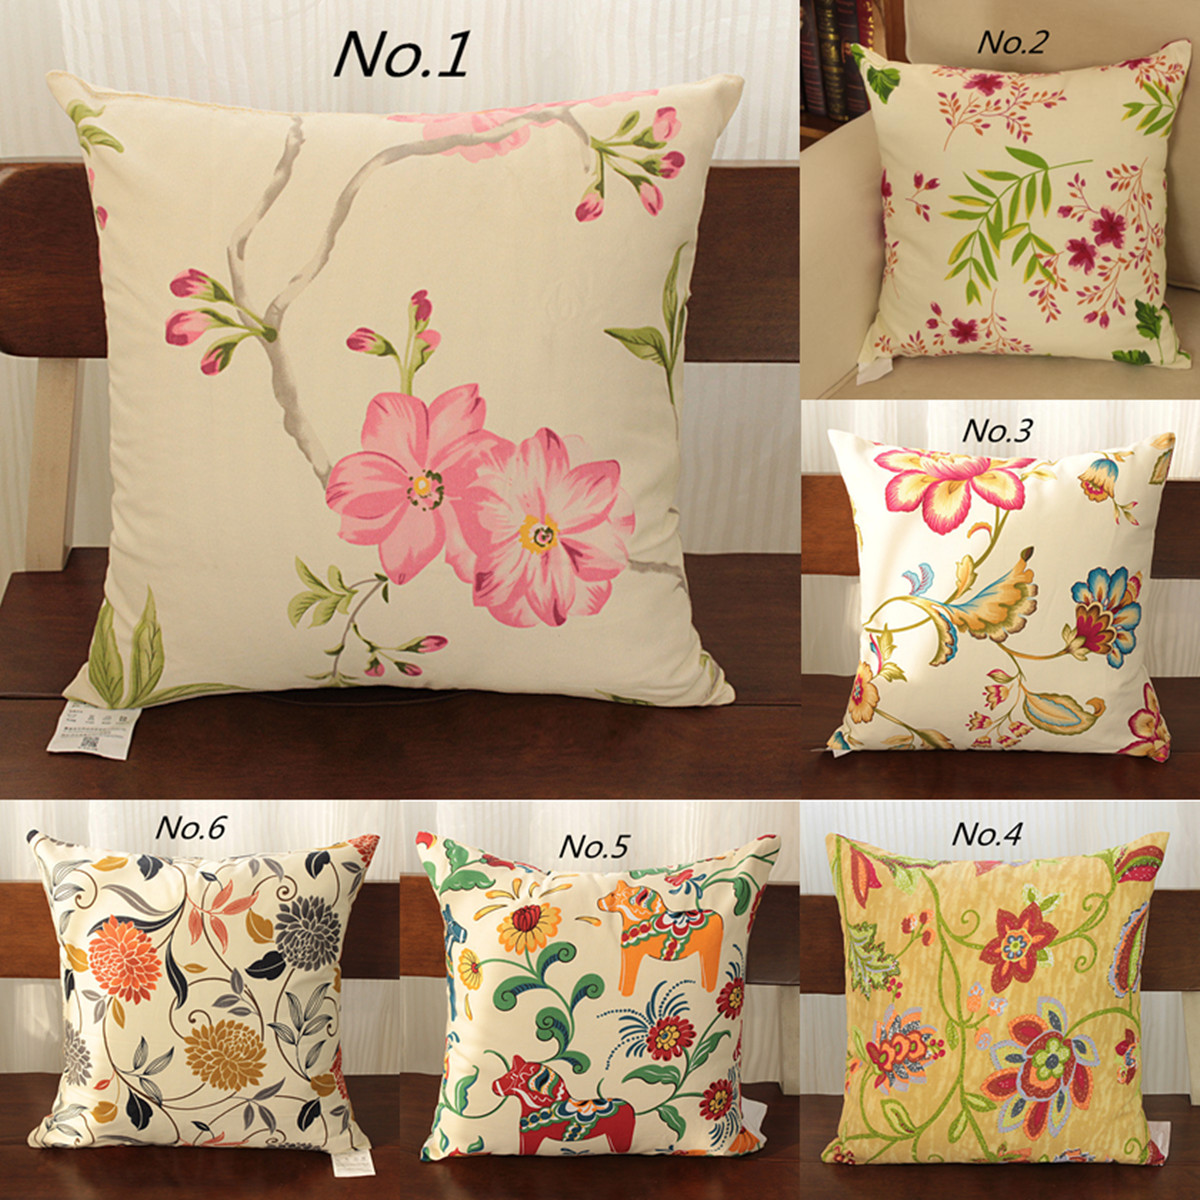 Cushion Cover Vintage Flower Pillow Case Pink Flowers Green Leaves